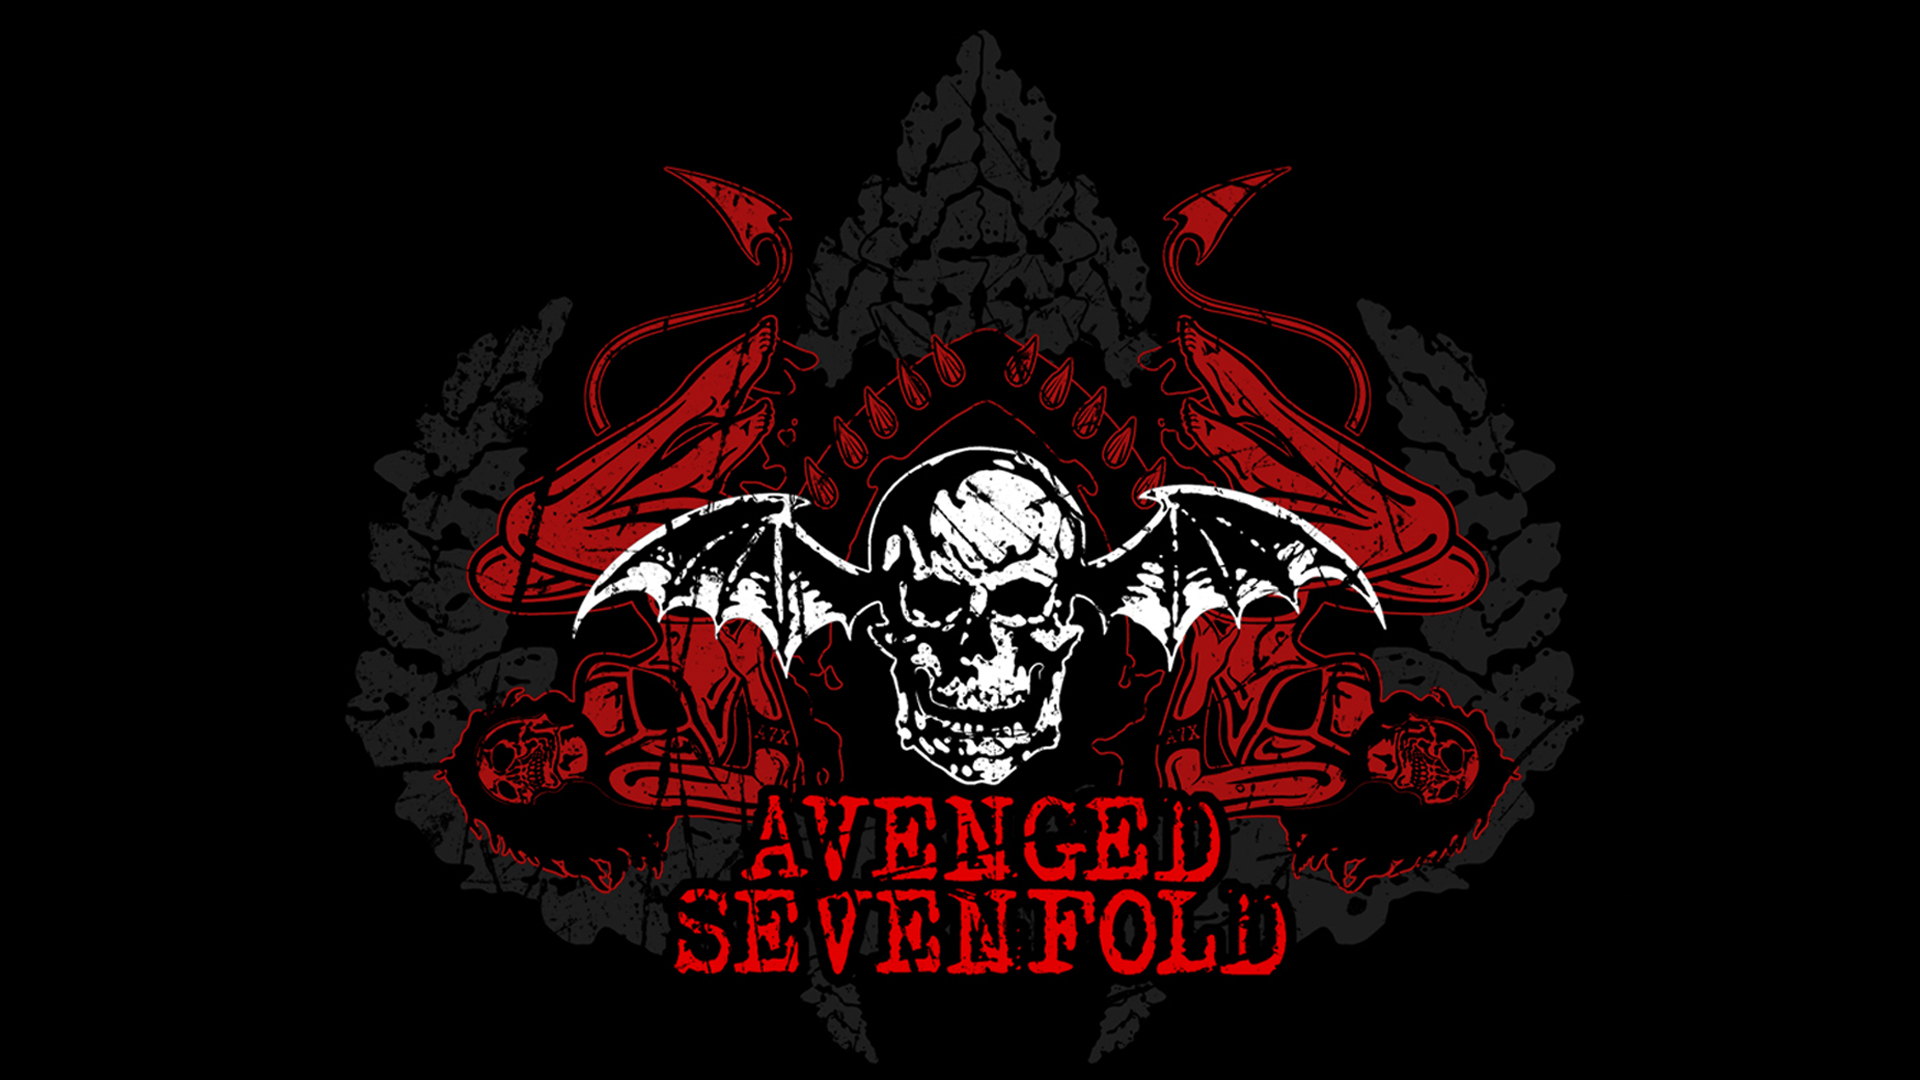 Avenged sevenfold full hd wallpaper and background image 1920x1080 music avenged sevenfold wallpaper voltagebd Gallery